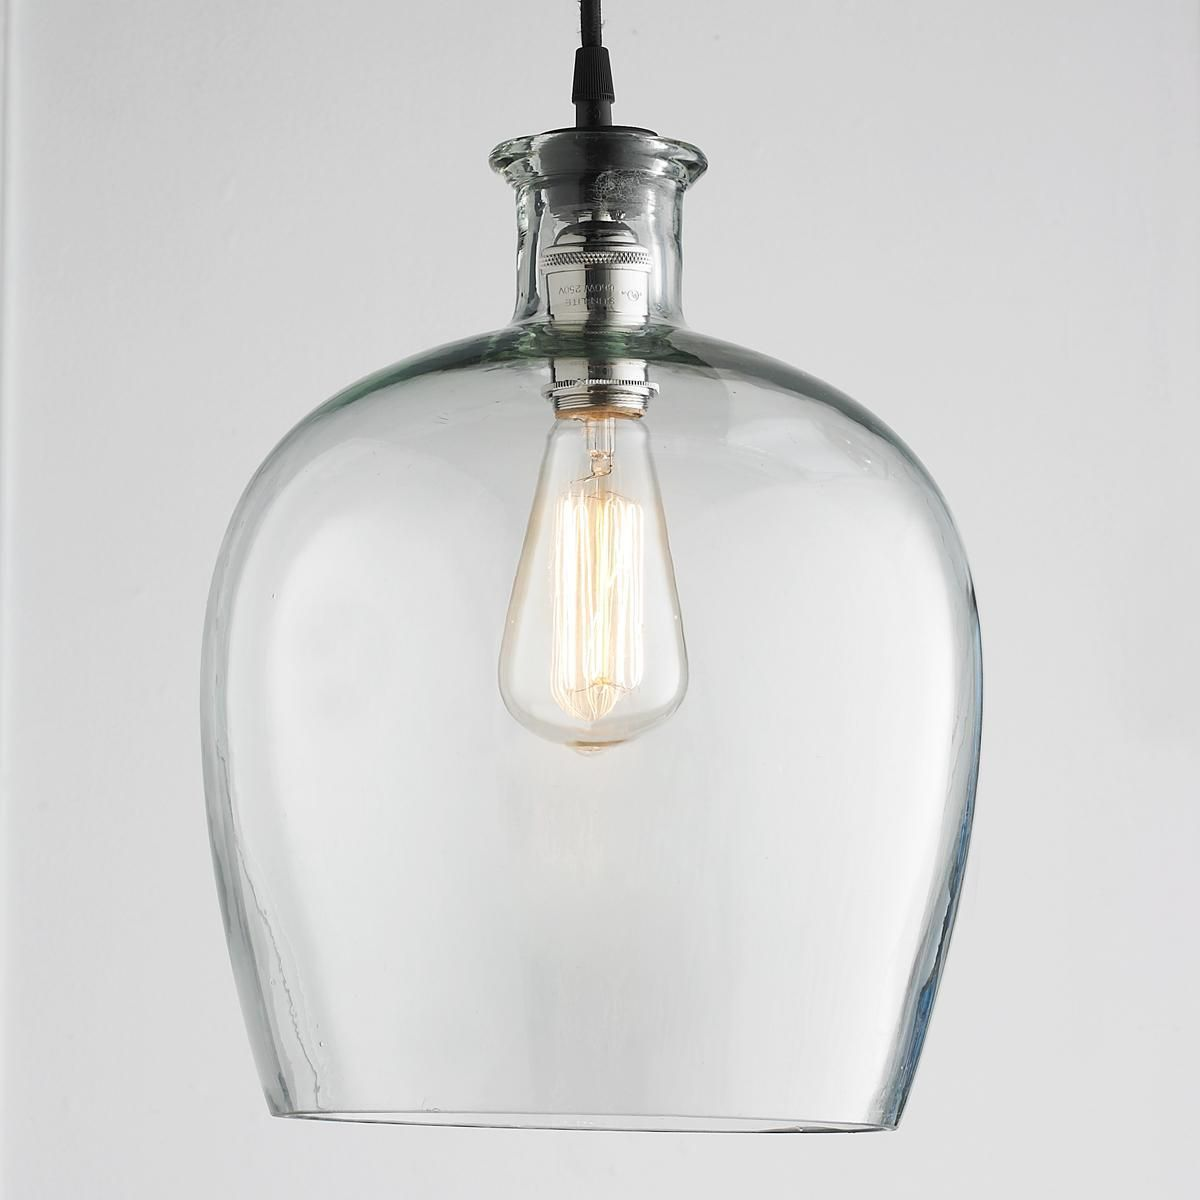 Large Carafe Glass Pendant Light Shades Of Light With Images Glass Pendant Light Large Glass Pendant Glass